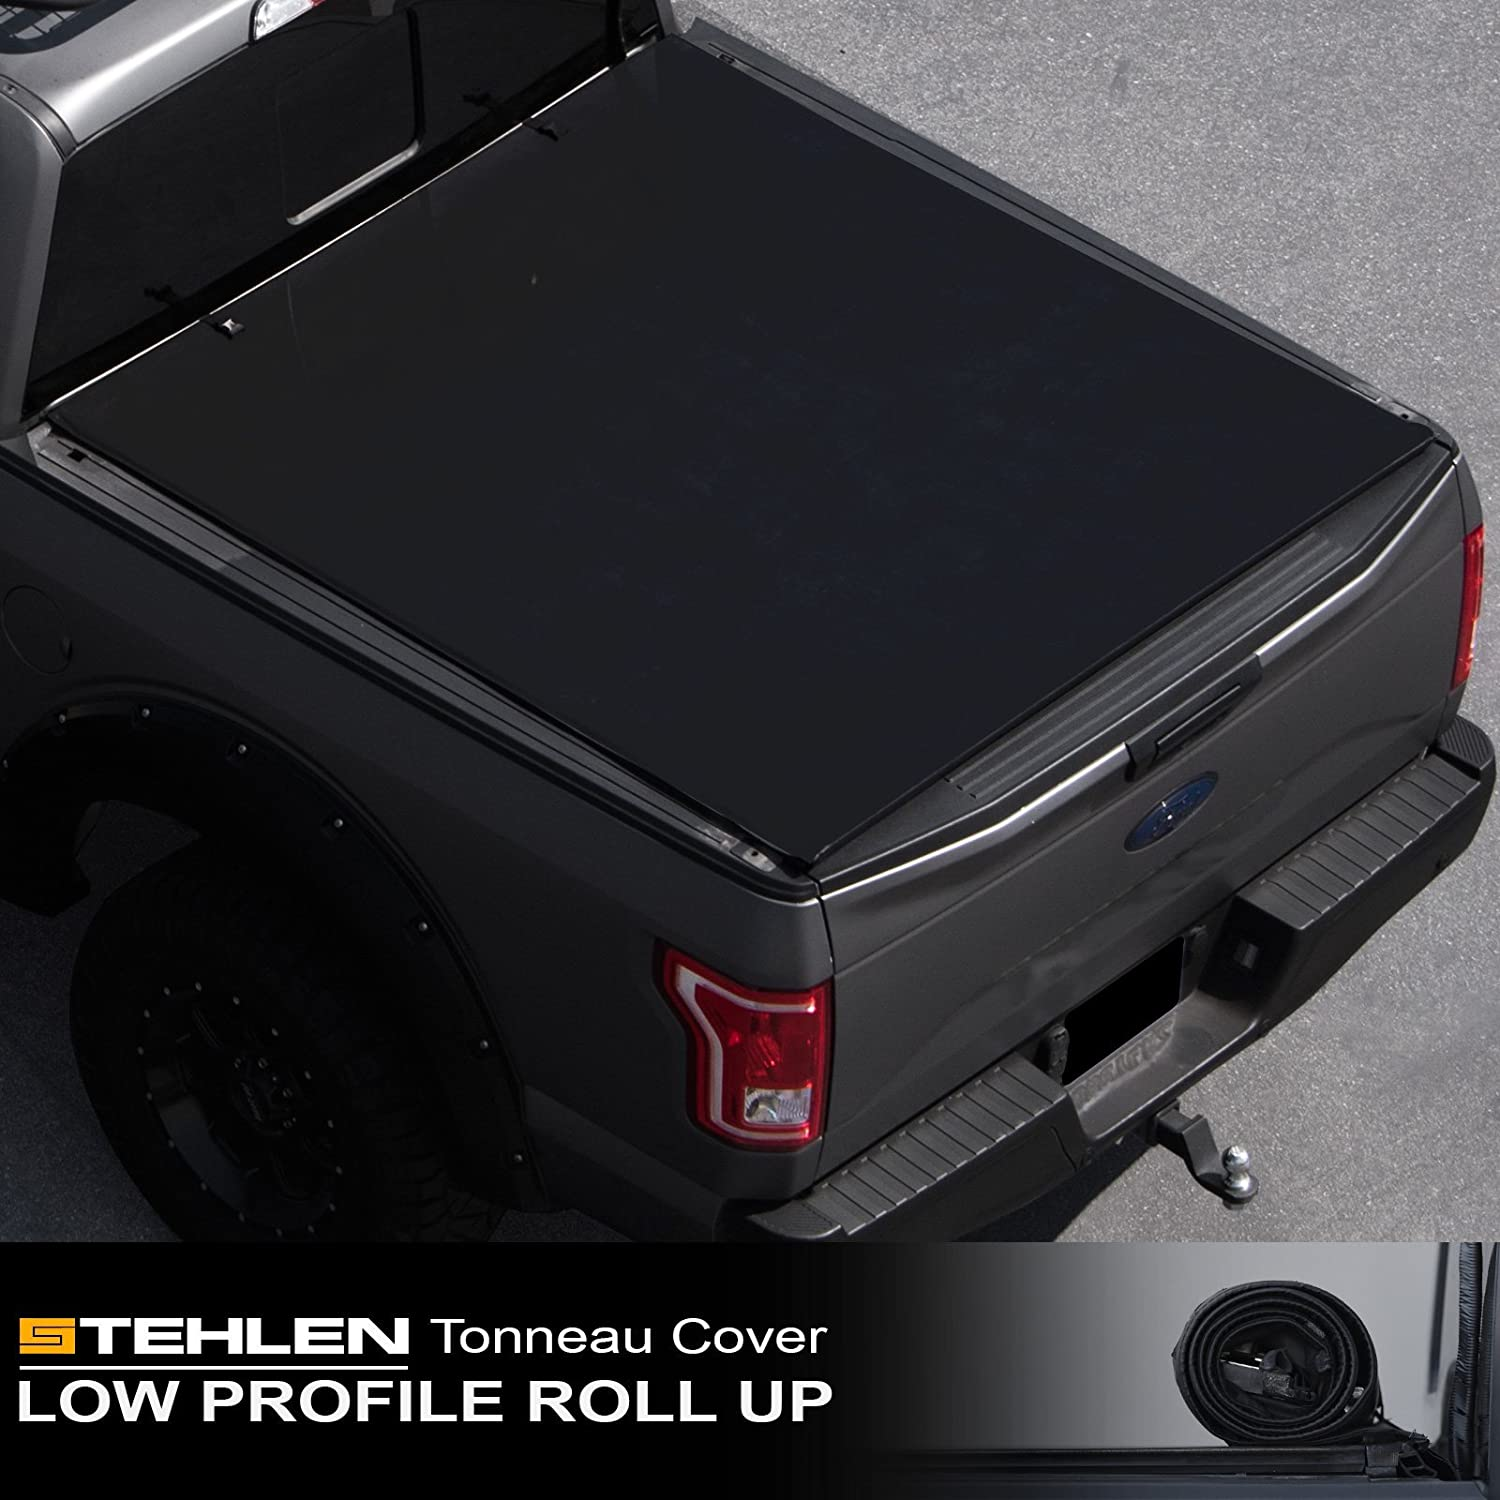 Stehlen Low Profile Roll Up Tonneau Cover